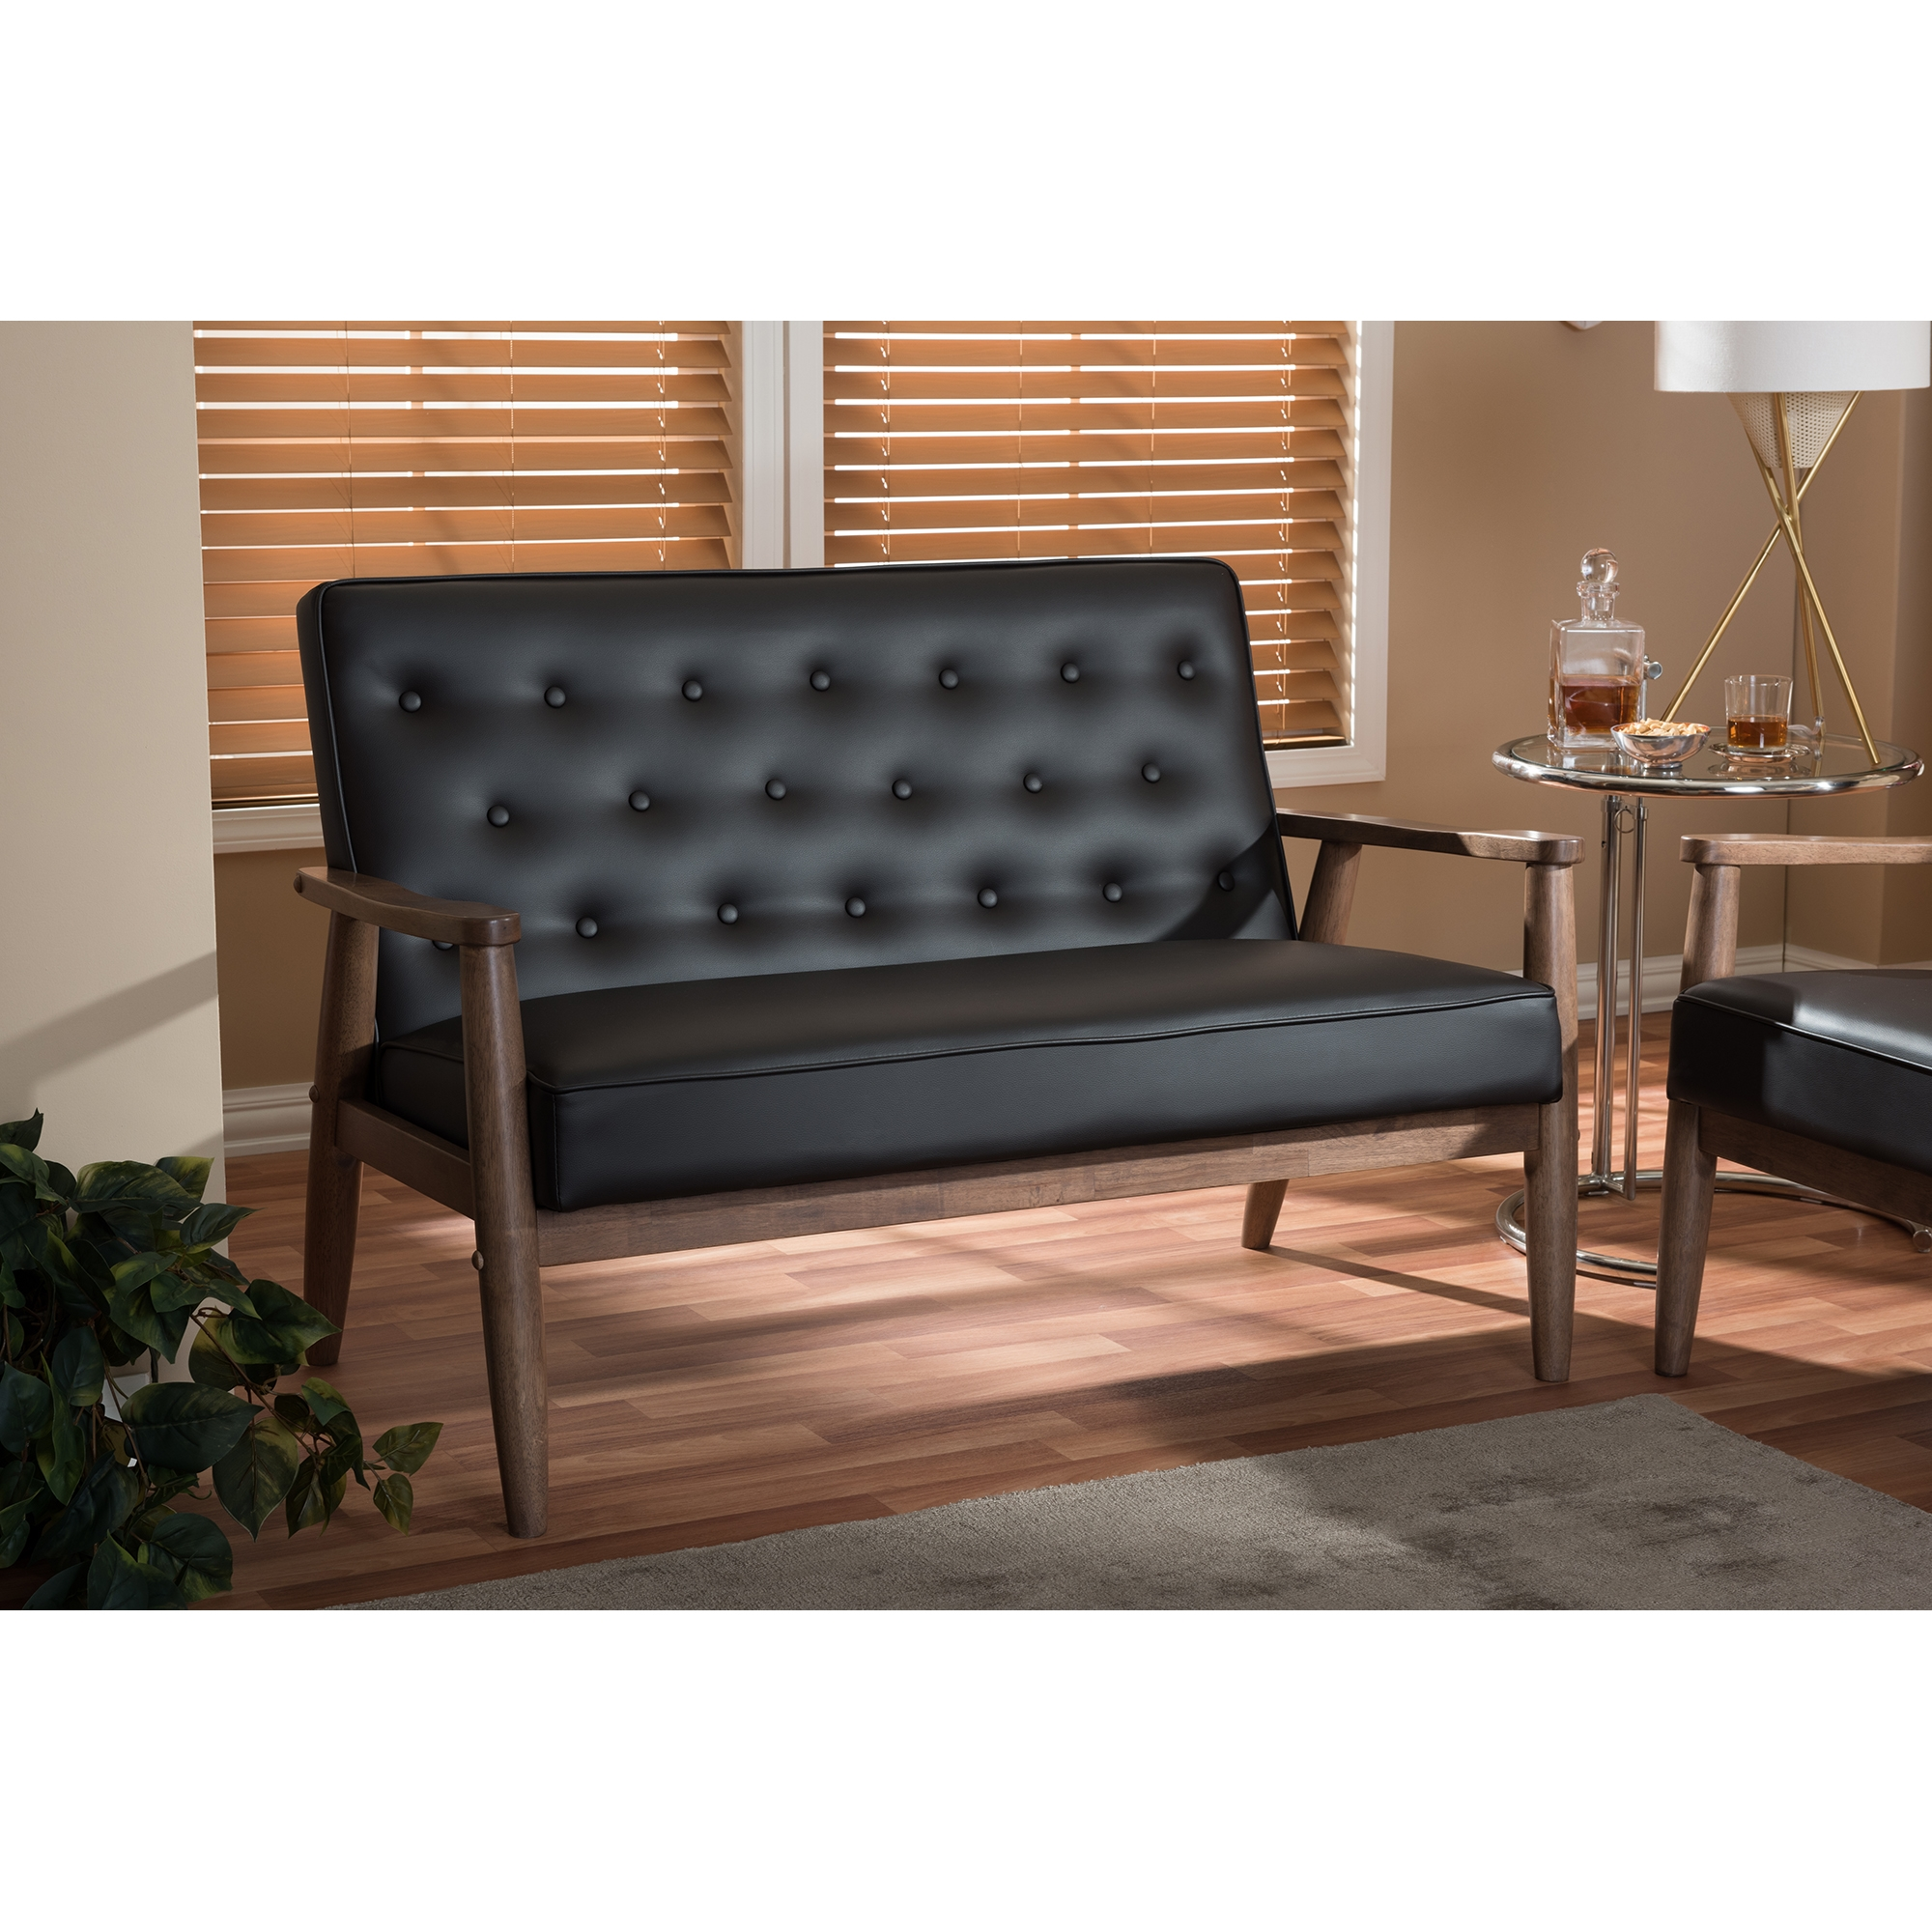 ... Baxton Studio Sorrento Mid Century Retro Modern Brown Faux Leather  Upholstered Wooden 2 Seater